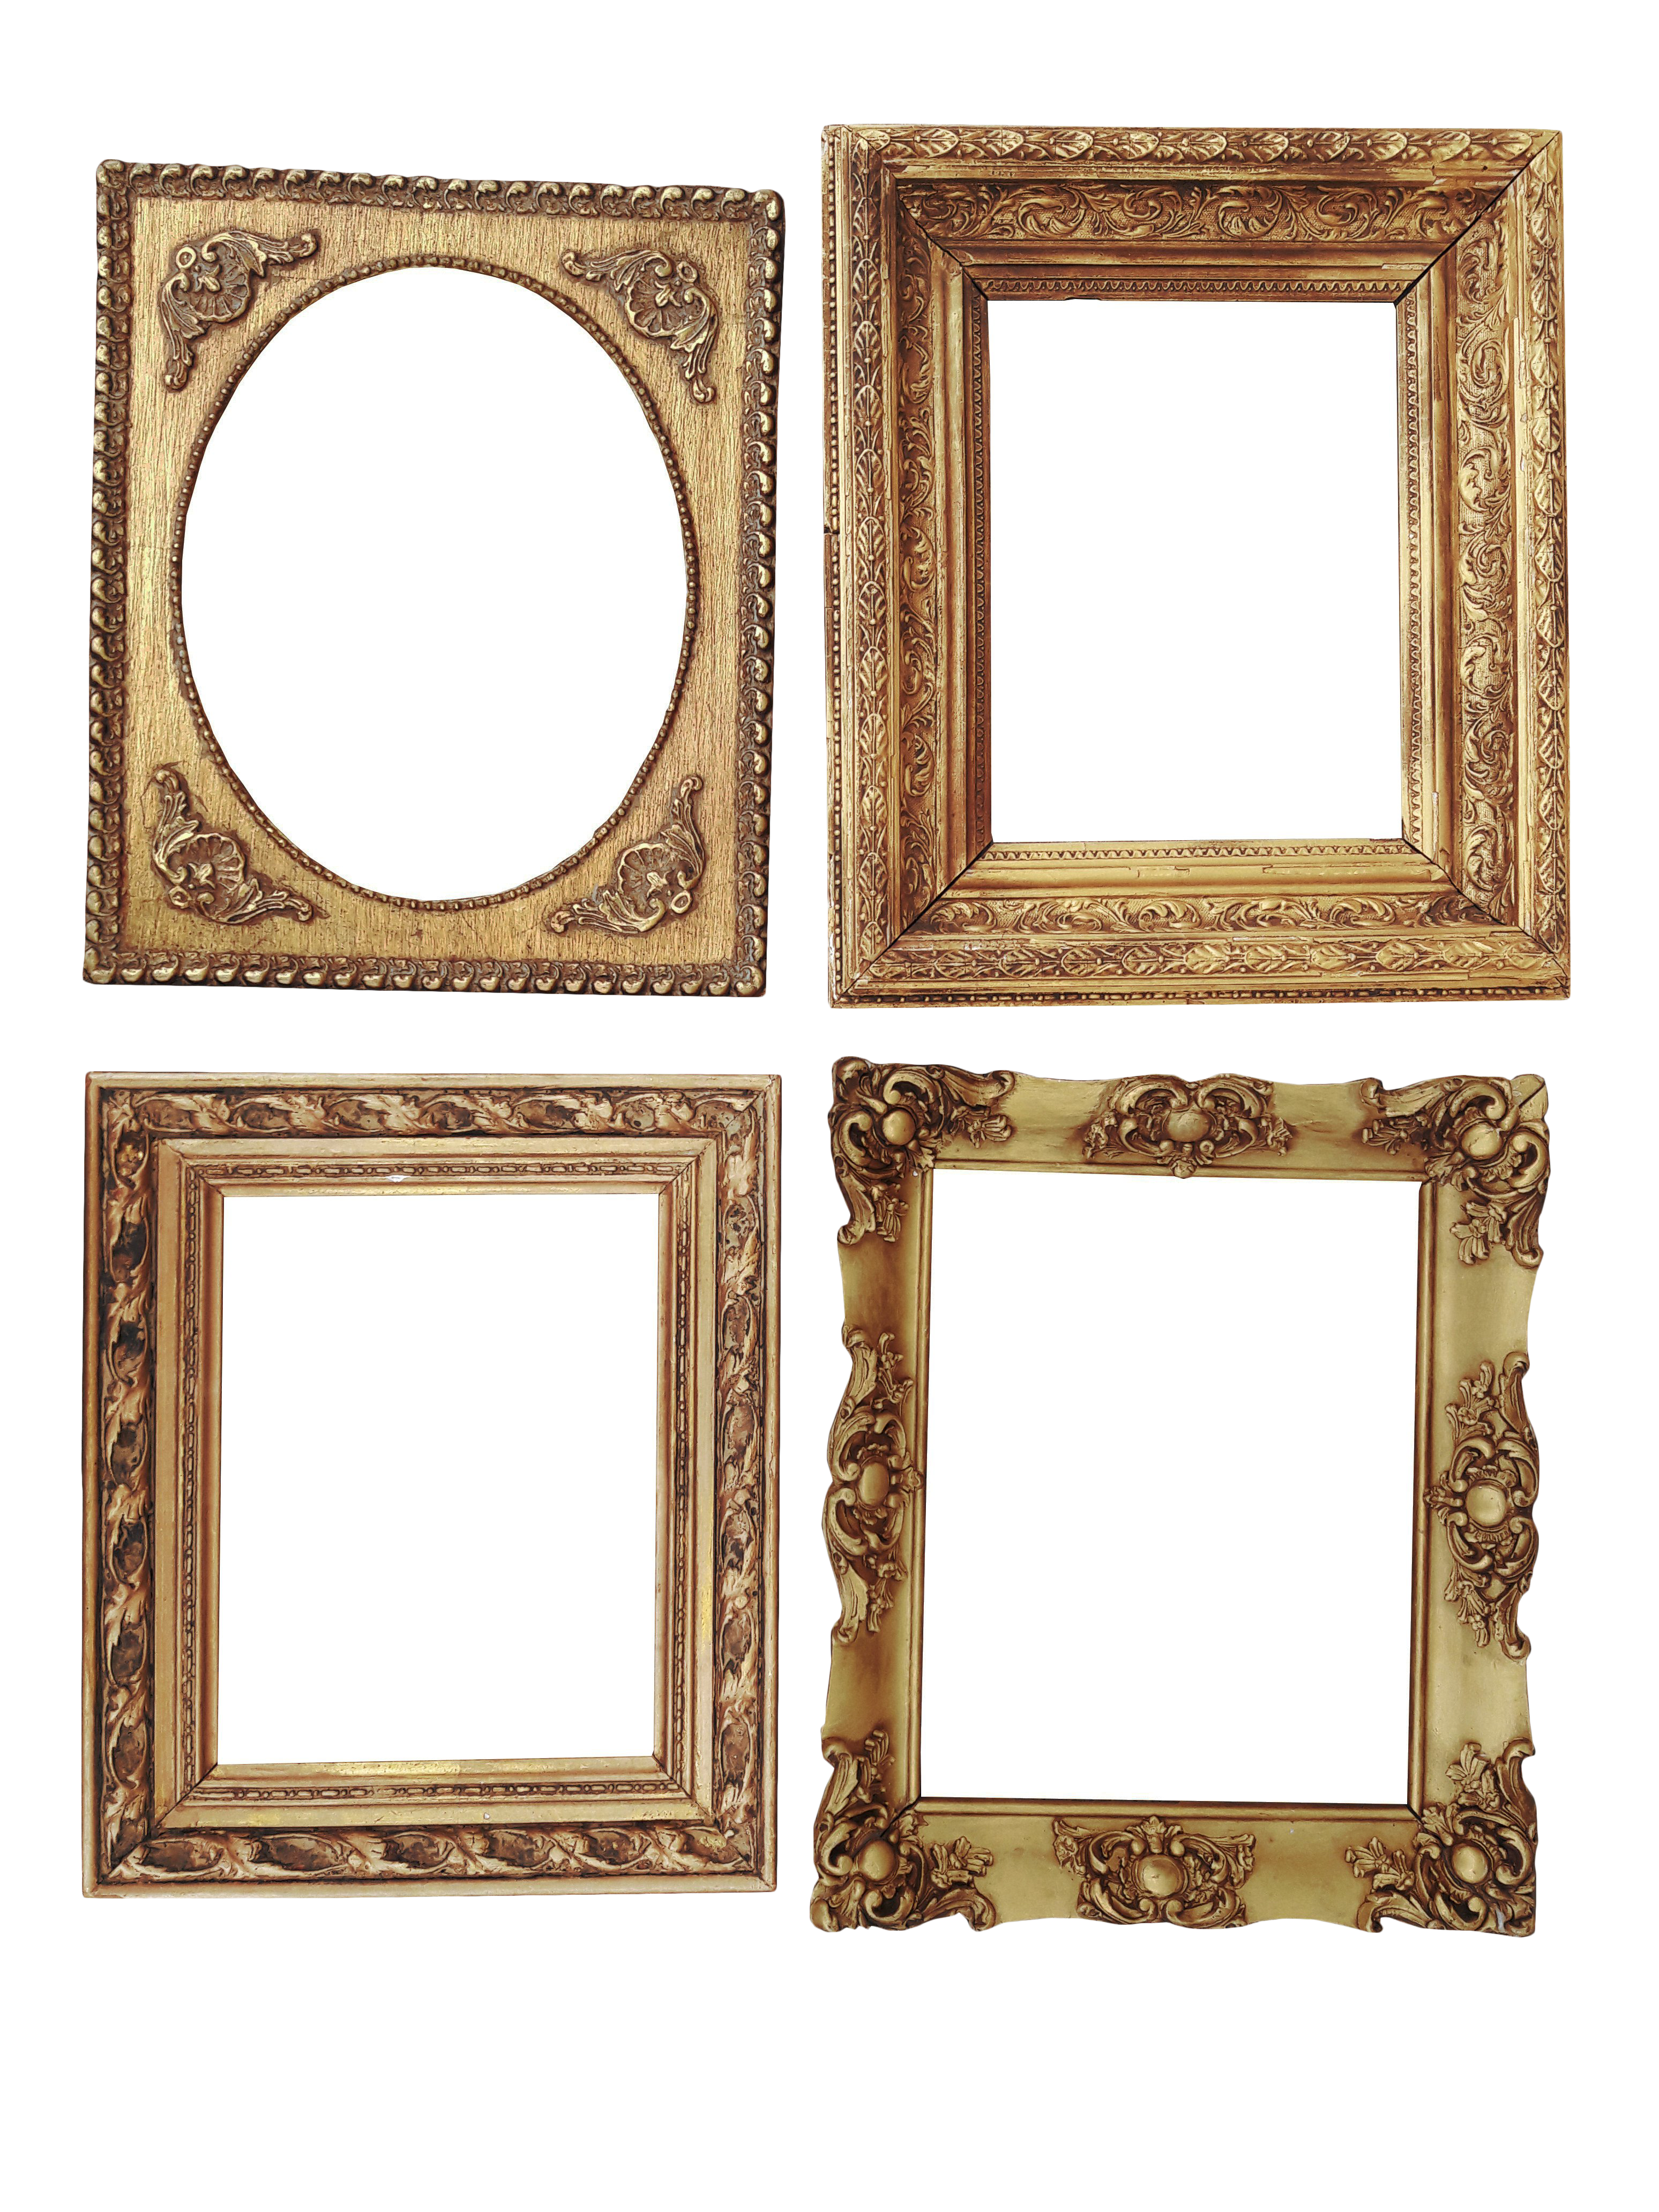 fa377061457c Collection Antique Gilt Gessp Frames S/4 Ornate Gold Antique Frames French  Style Gilt Frames   Chairish